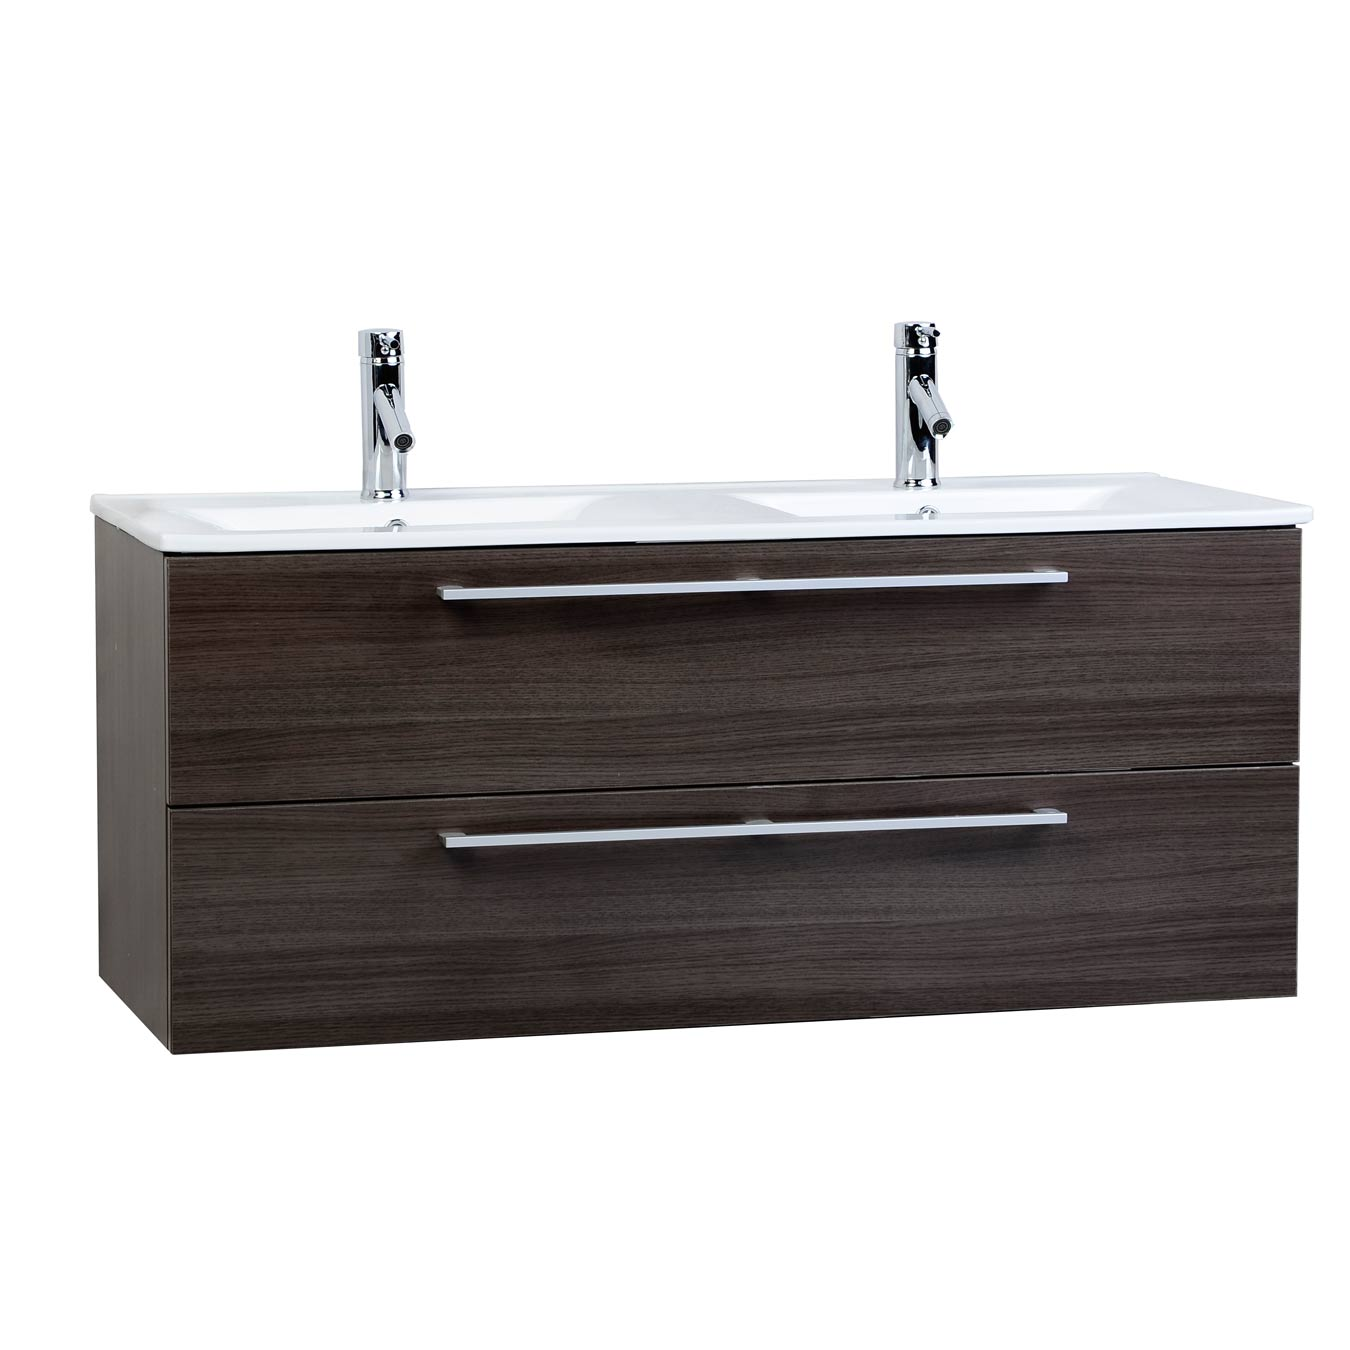 Buy caen 48 in wall mount double bathroom vanity grey oak for Bathroom 48 inch vanity